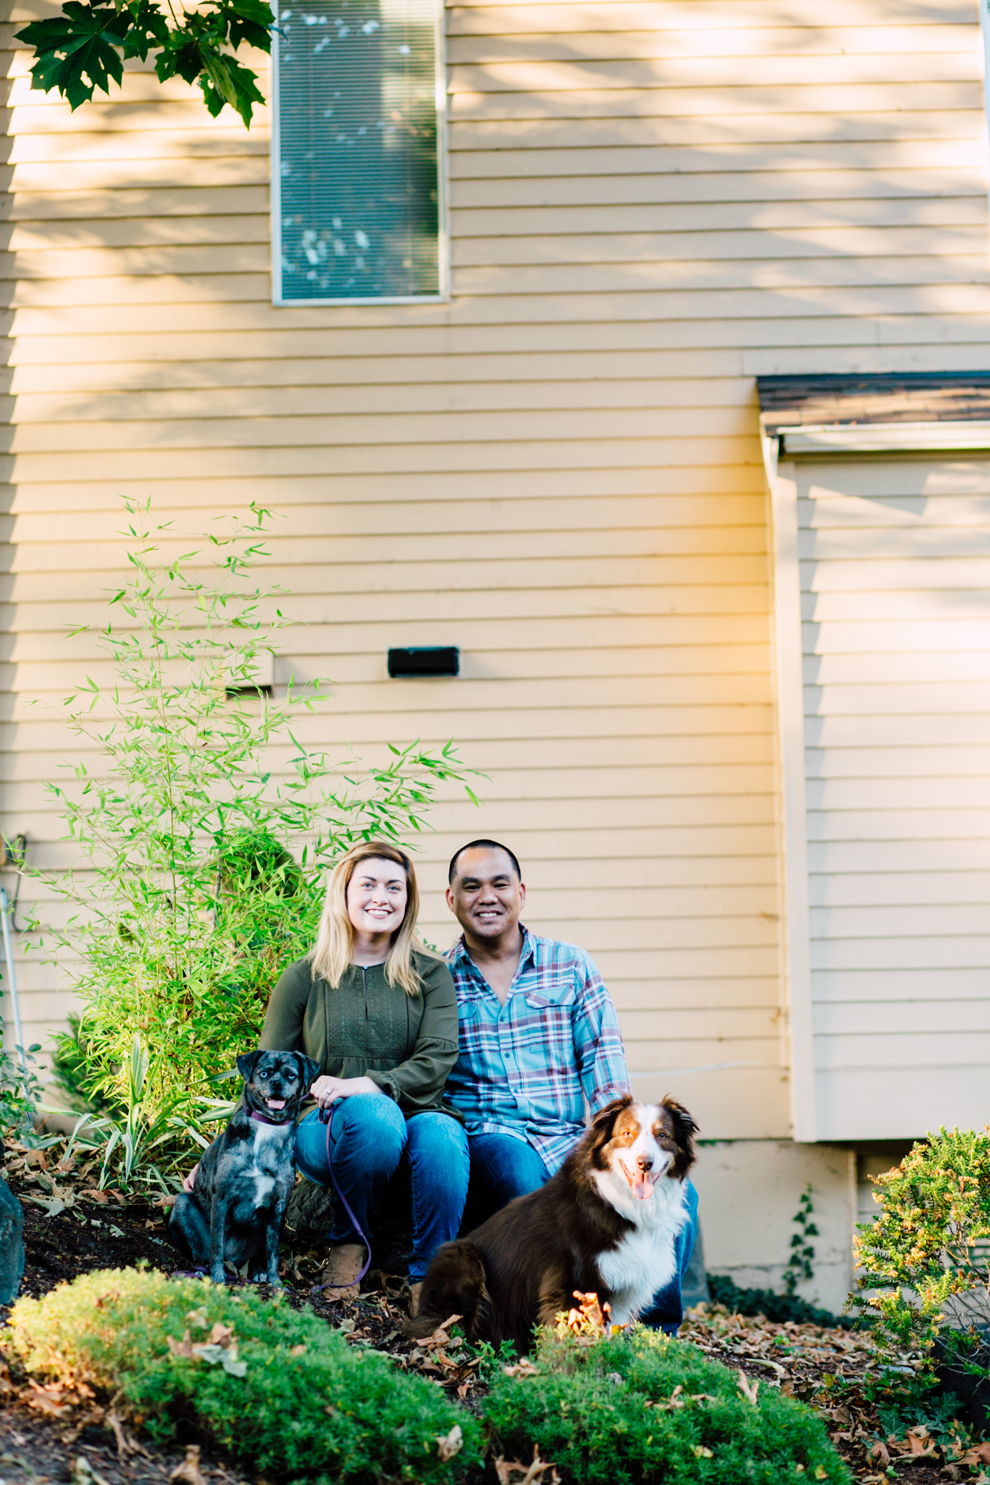 004-bellingham-fall-city-engagement-photographer-katheryn-moran-dogs-tommy-alyssa.jpg